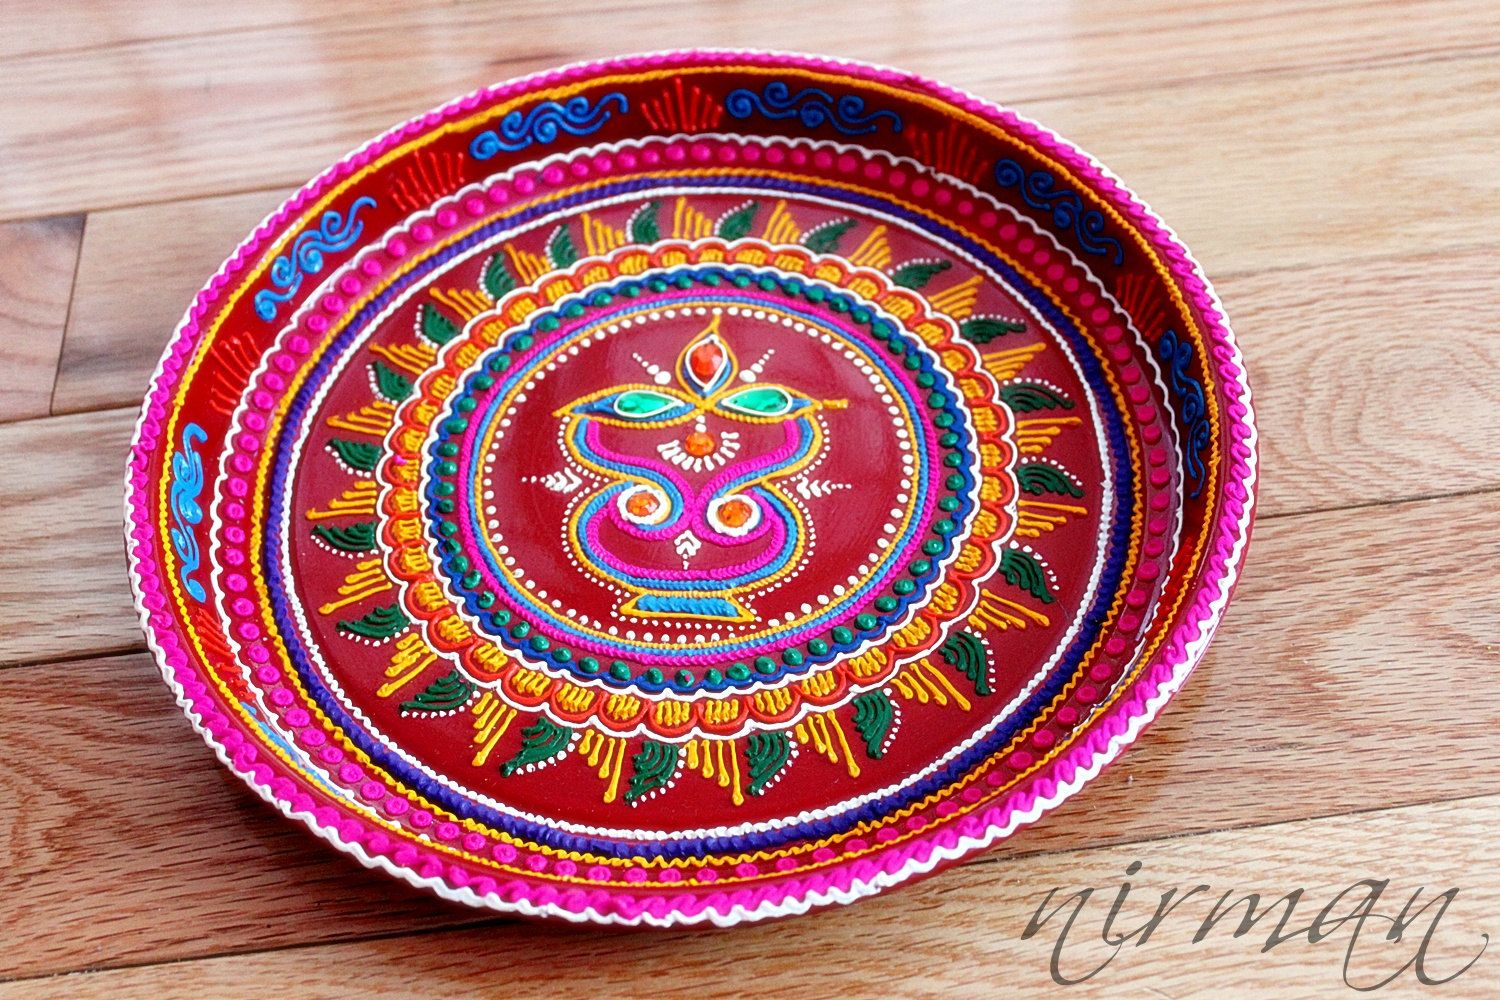 Diy Mehndi Plates : Image result for henna plate designs diy projects